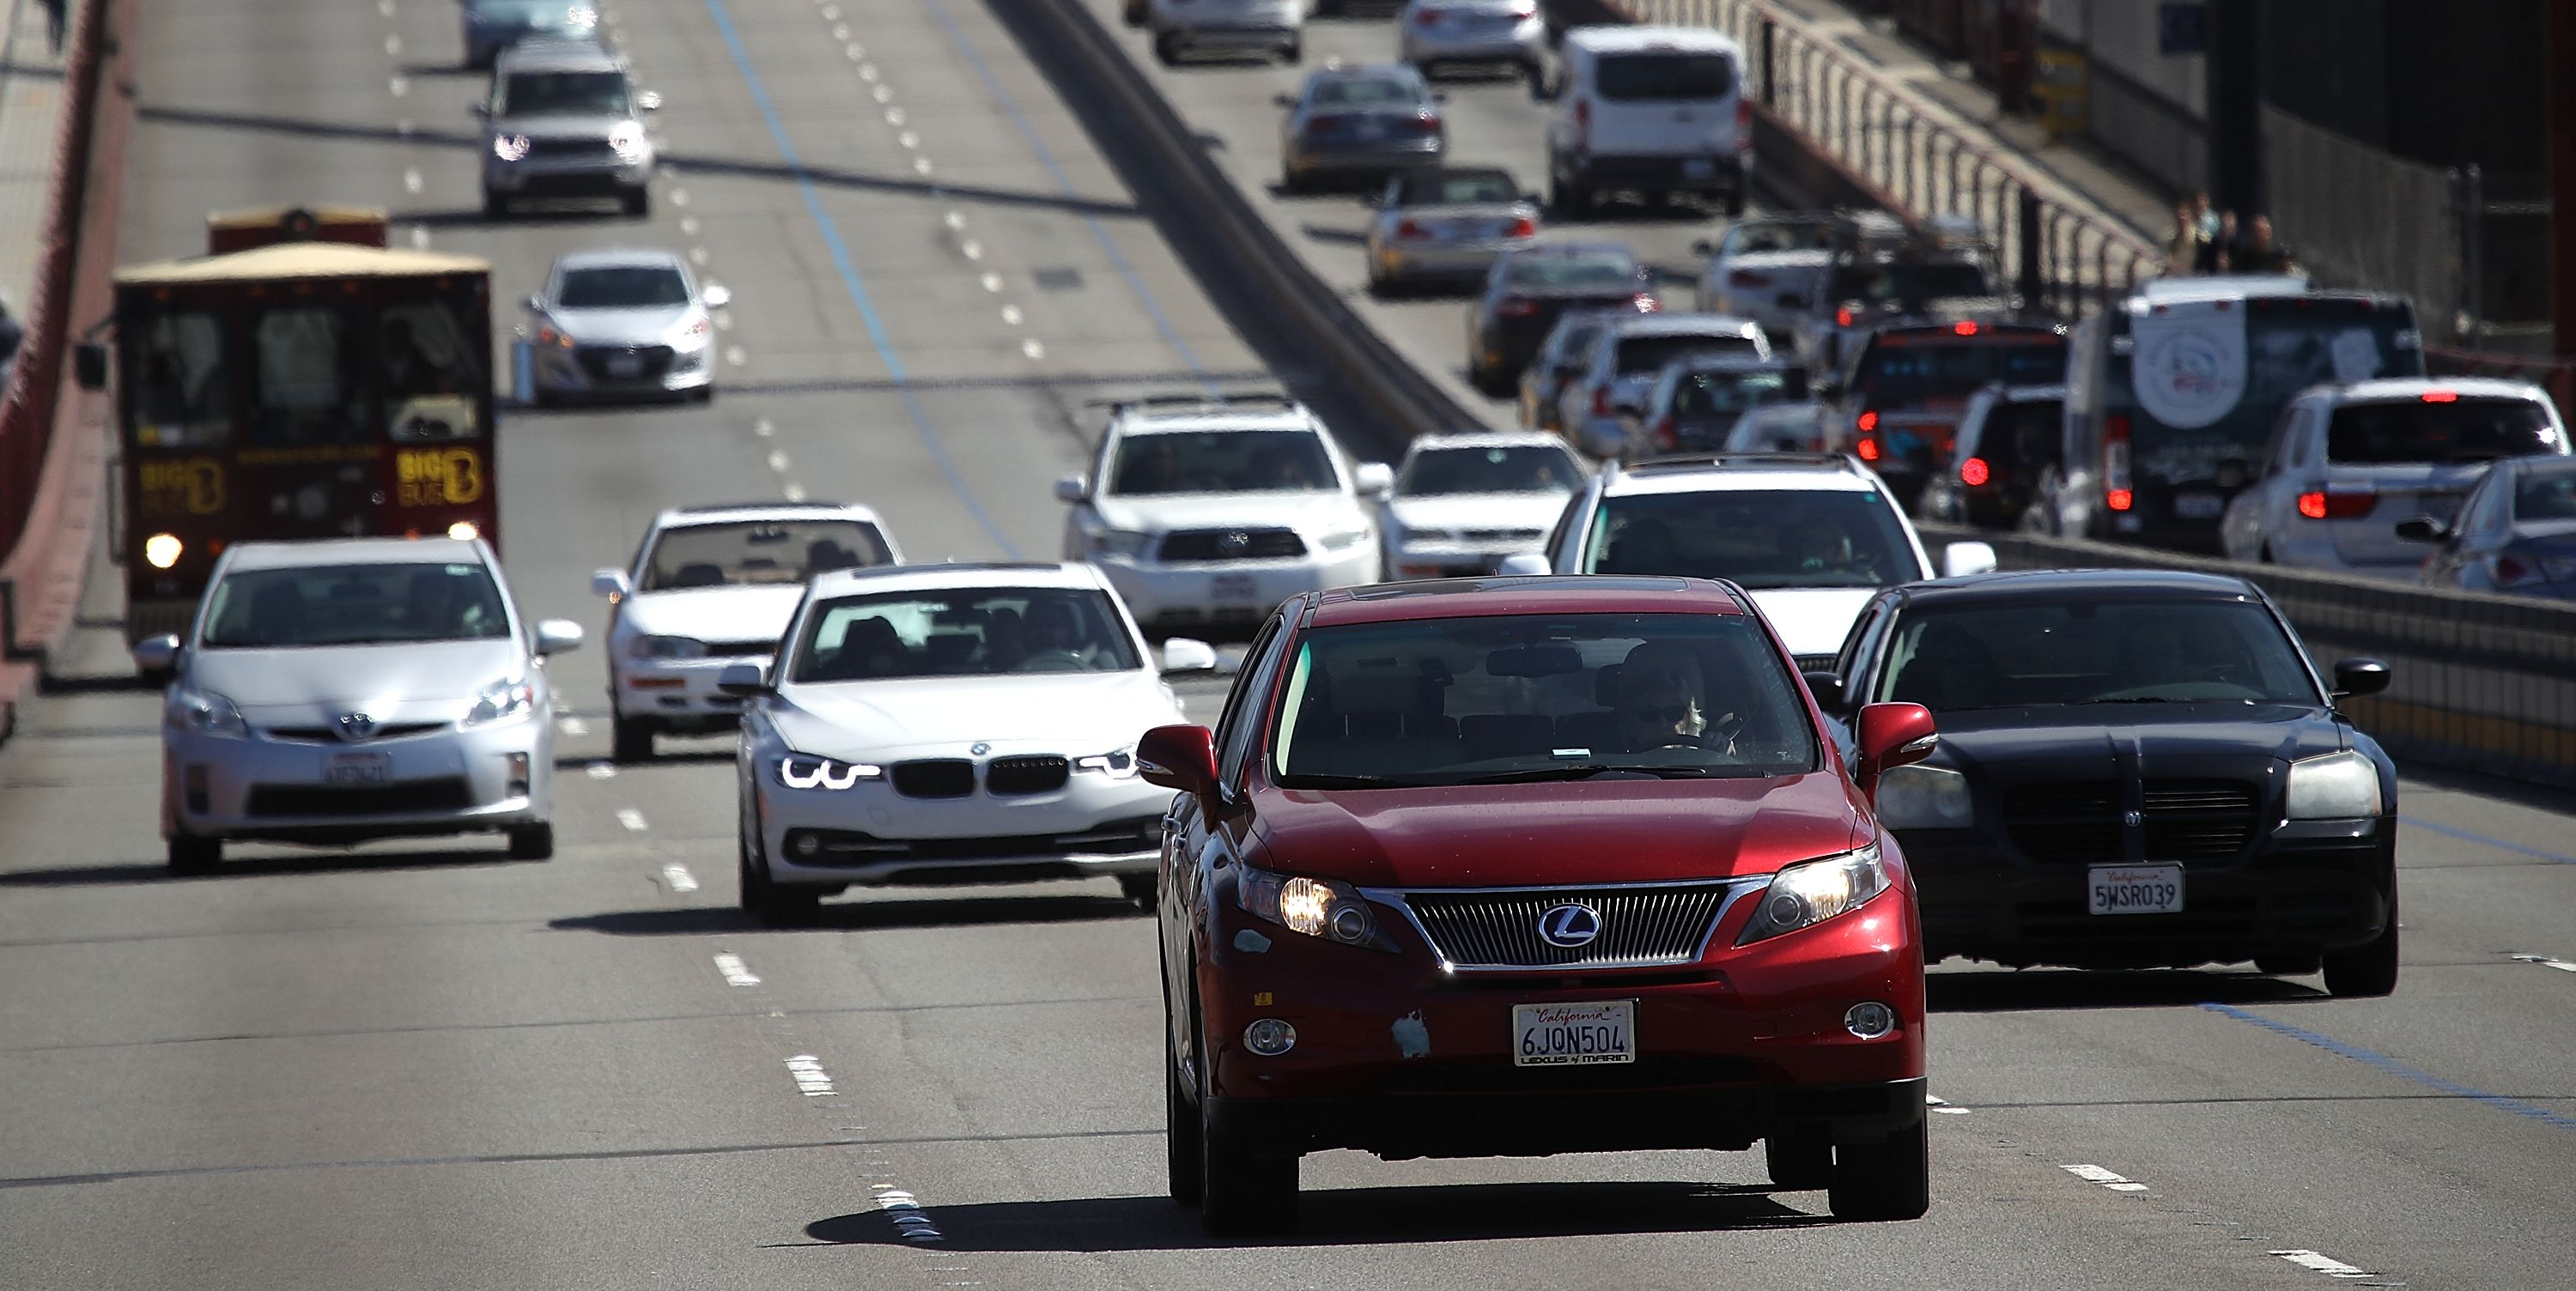 White House Drops Talks with California, Aims to Finalize Looser Fuel-Economy Rules This Year